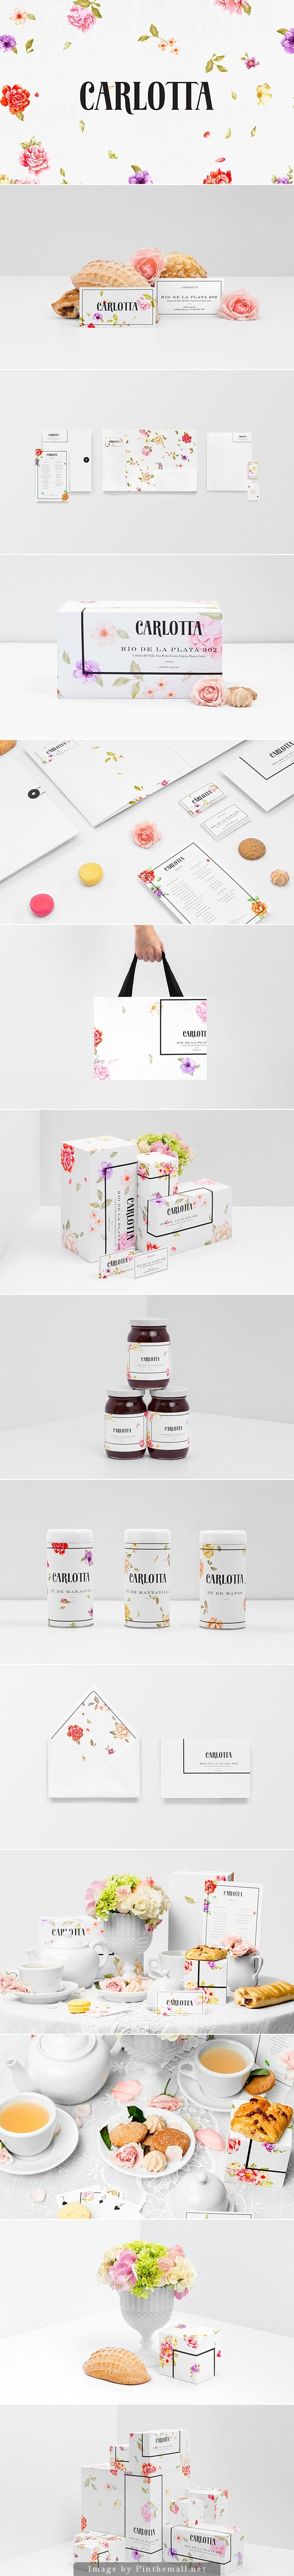 You don't even have to like flowers to appreciate this beautiful Carlotta by Anagrama identity, packaging, branding curated by Packaging Diva PD created via https://www.behance.net/gallery/20653269/Carlotta